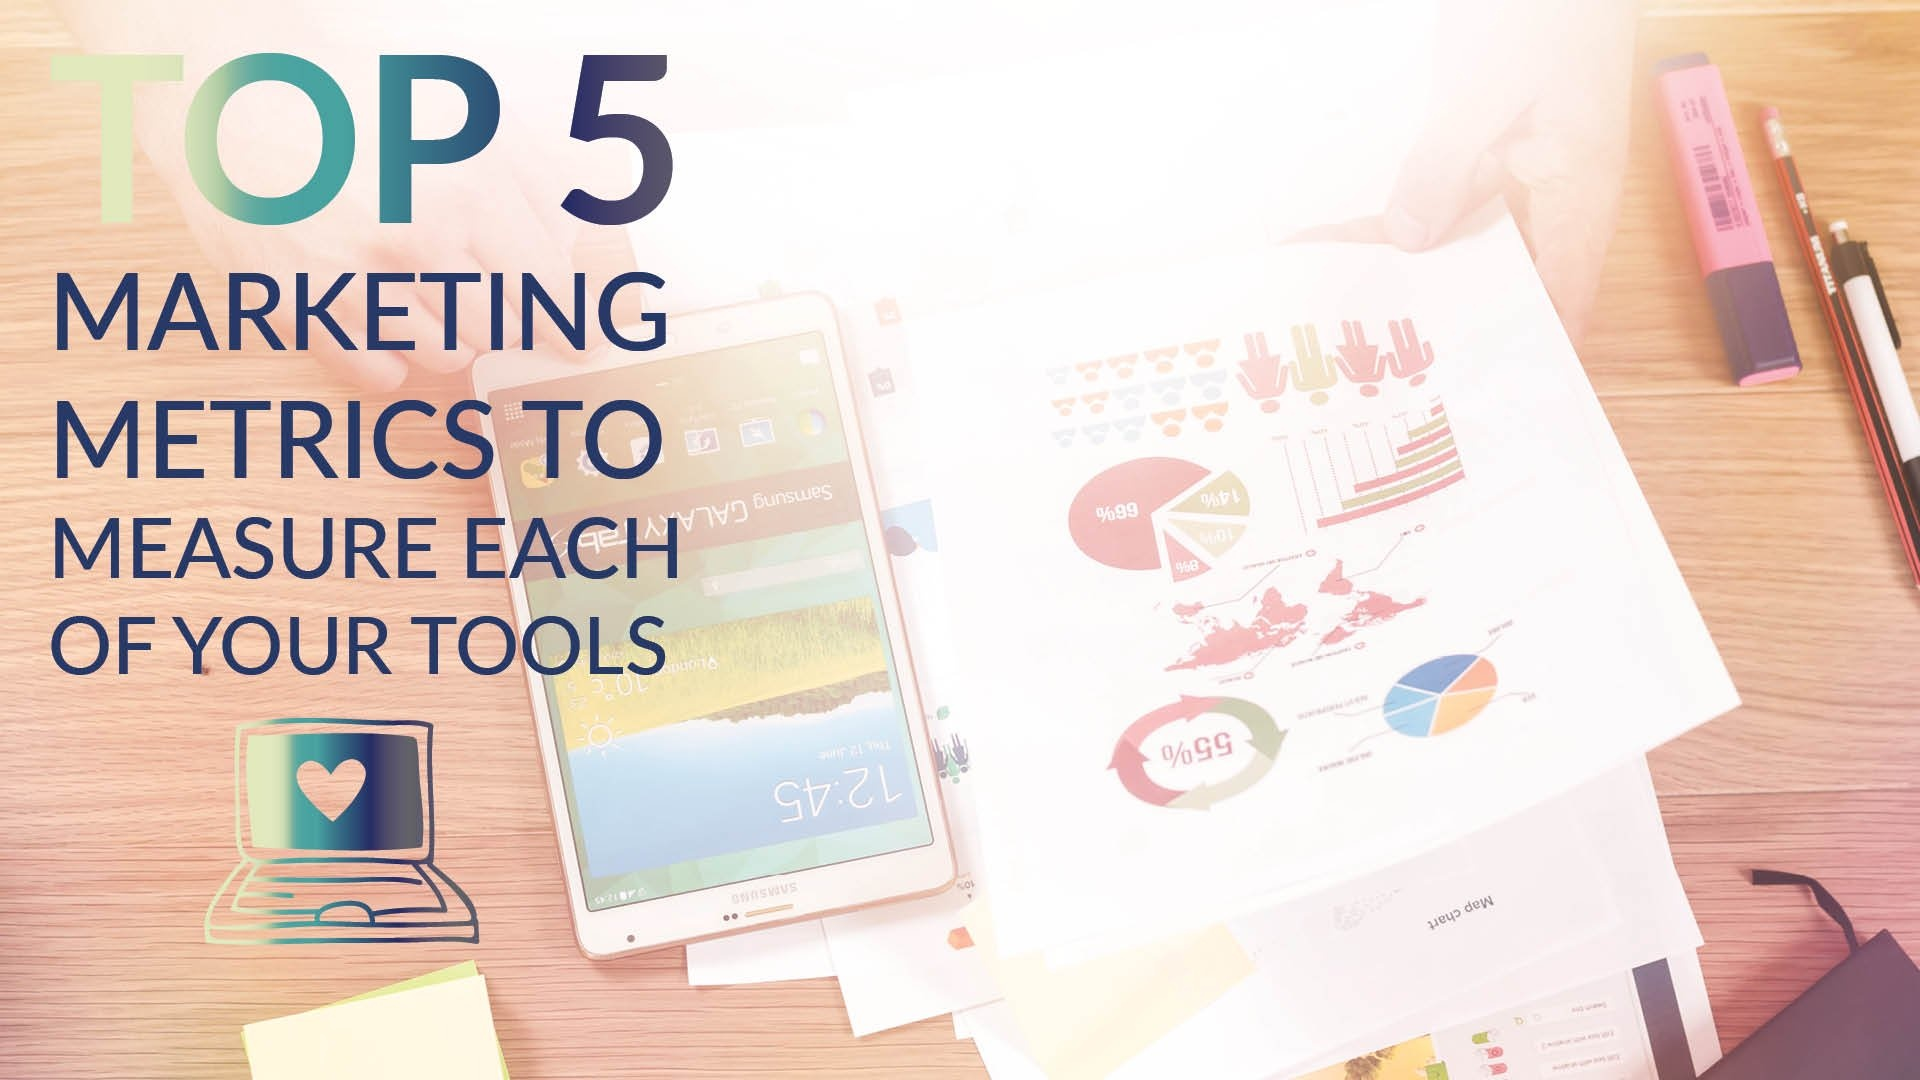 top 5 marketing metrics tool